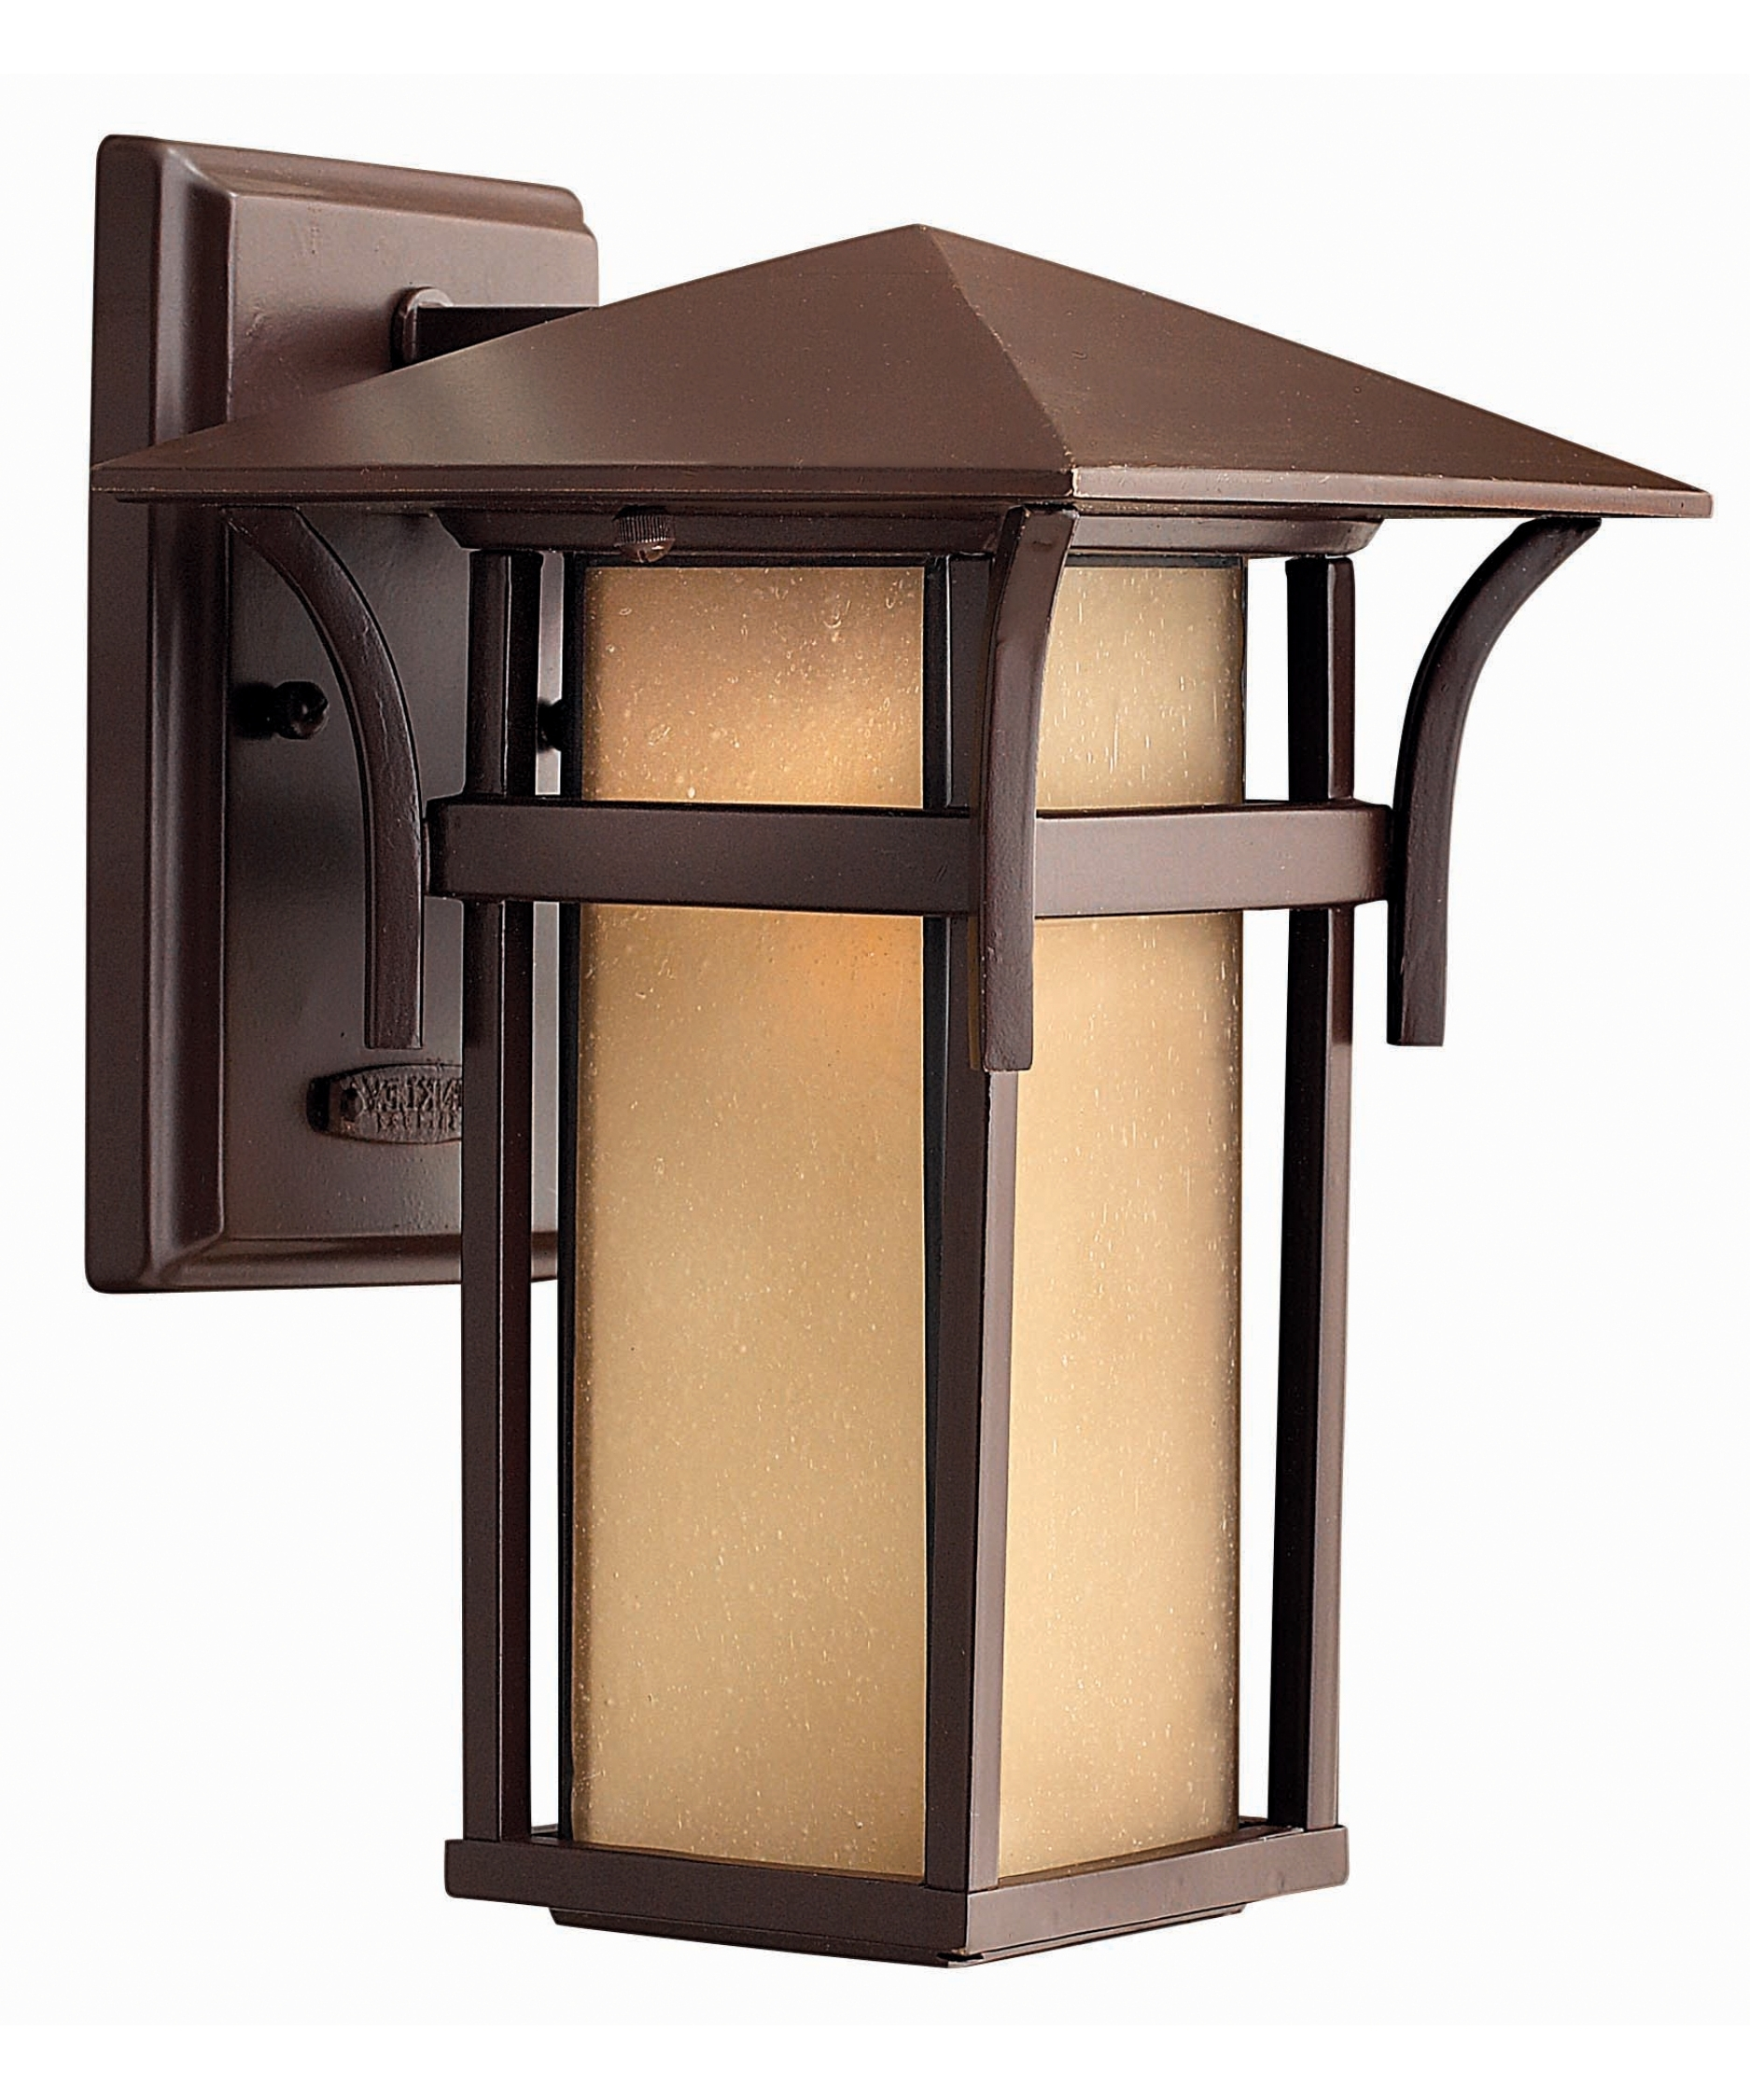 Outdoor Wall Lighting At Walmart Inside 2018 Outdoor Porch Light Fixtures Lighting Exterior Fixture Simple Design (View 12 of 20)